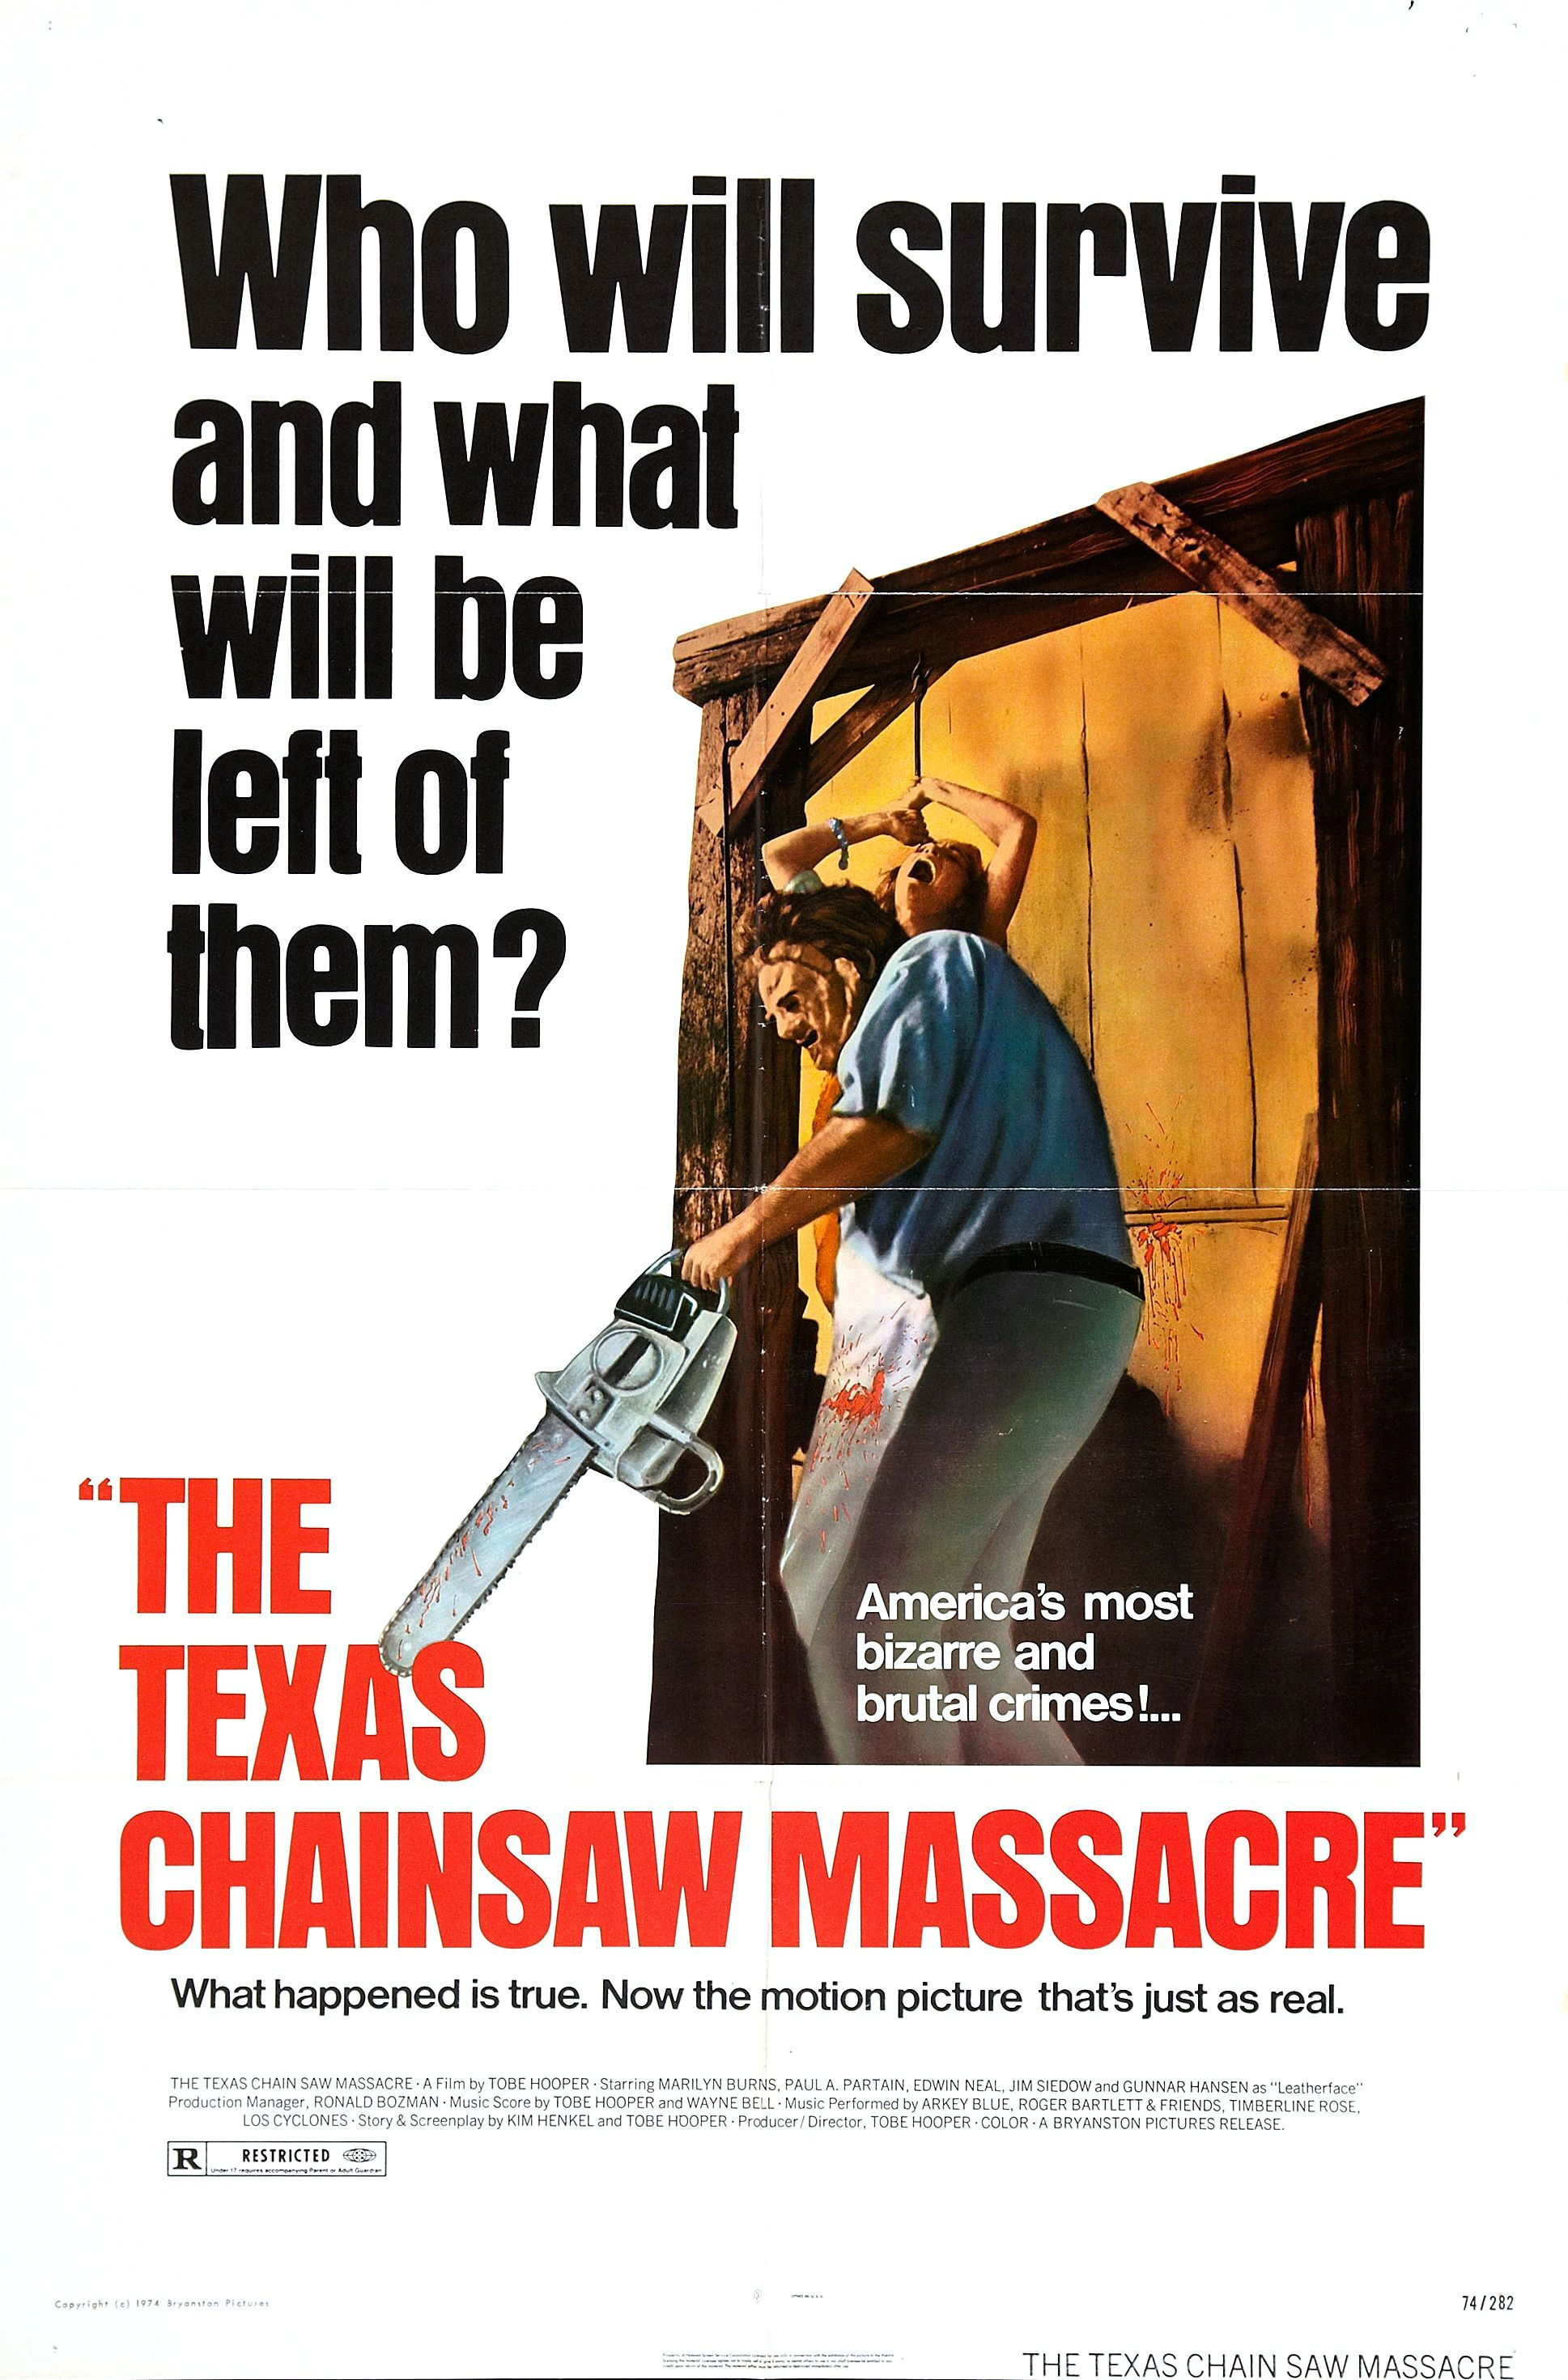 Texas Chainsaw Massacre - classic poster